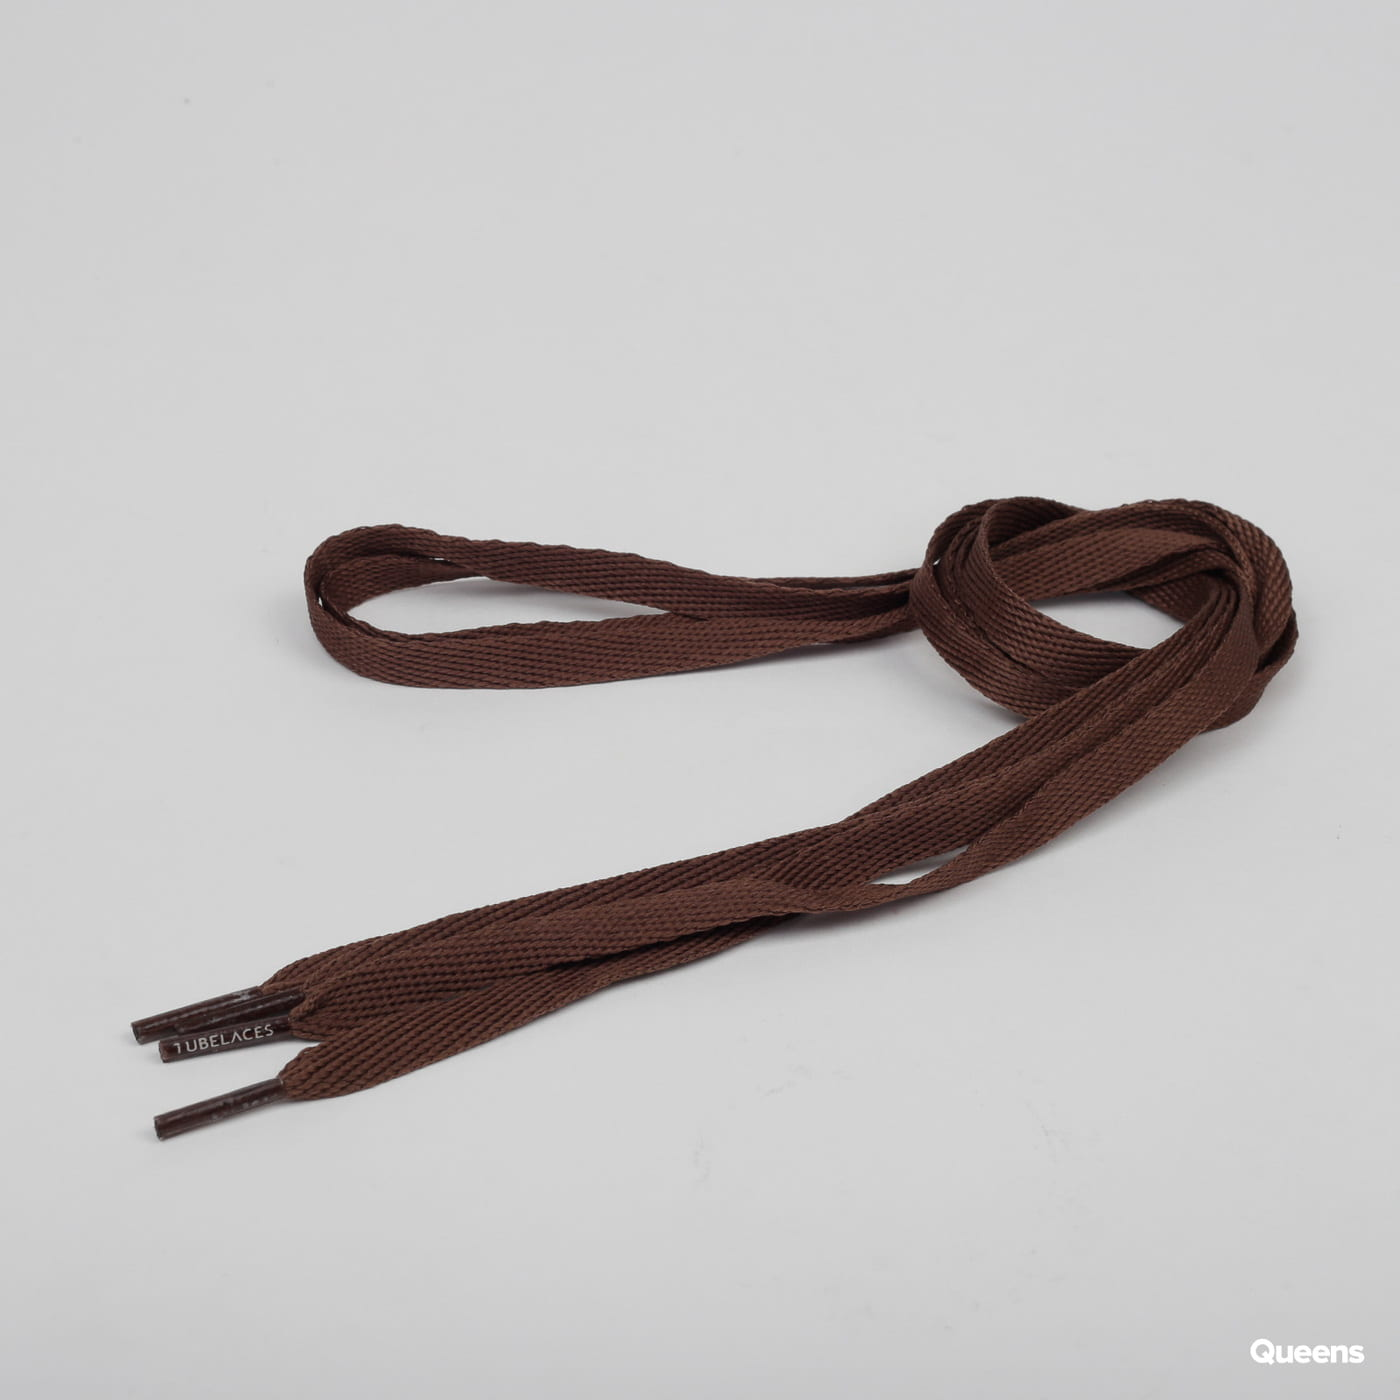 MD Tube Laces 120 brown